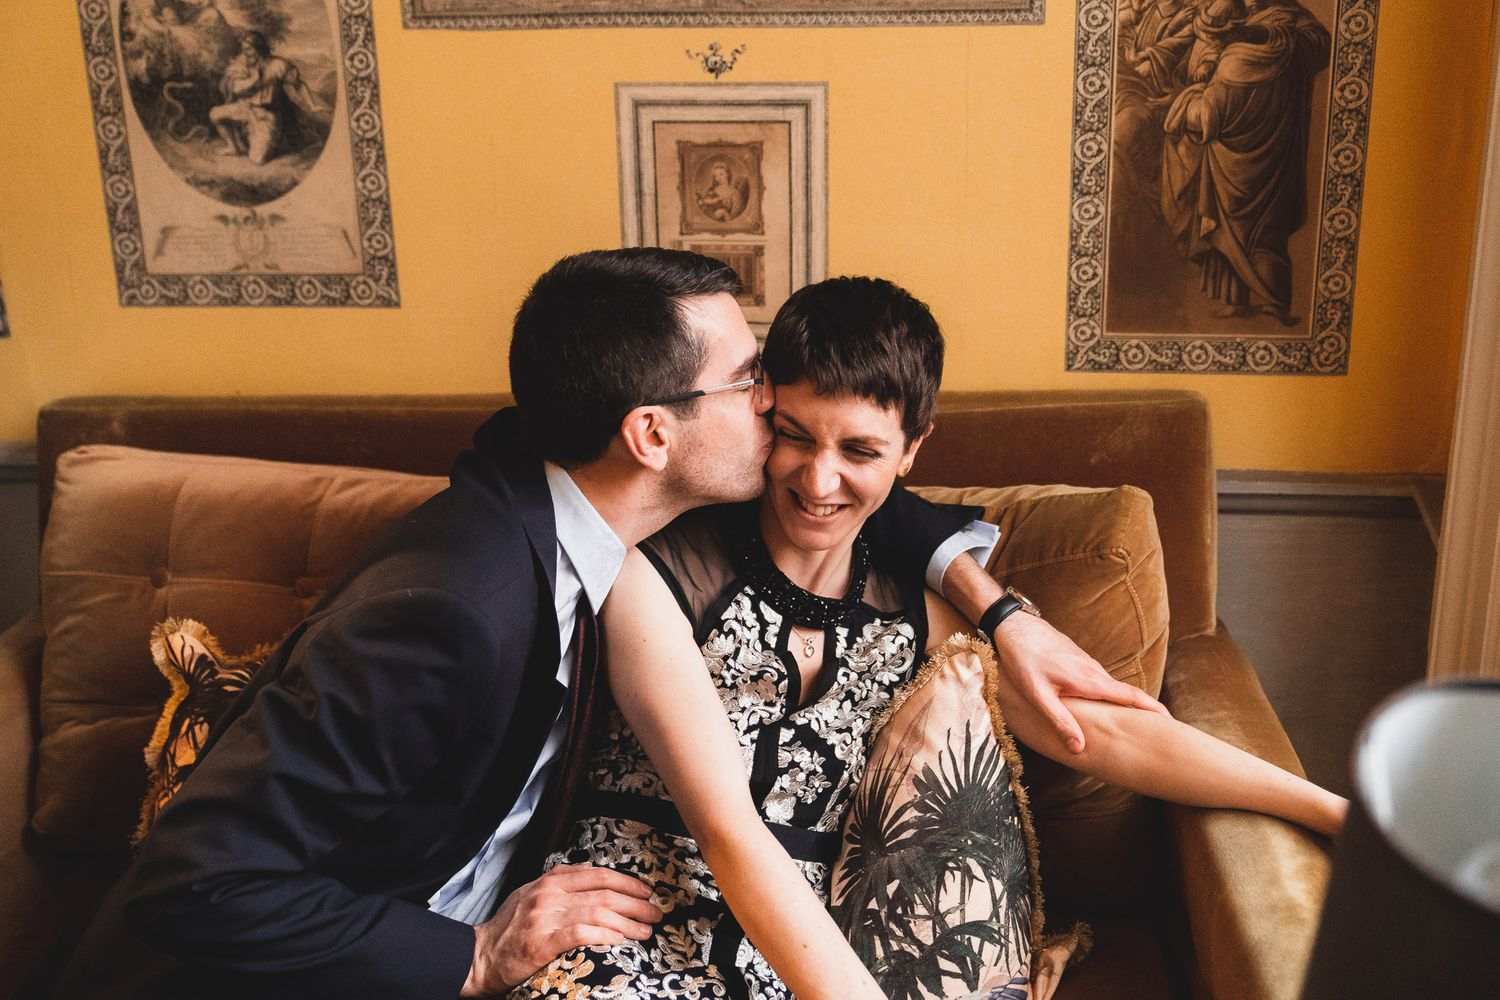 Bride and groom kiss and cuddle on a sofa at their Dorset wedding venue, 10 Castle Street.